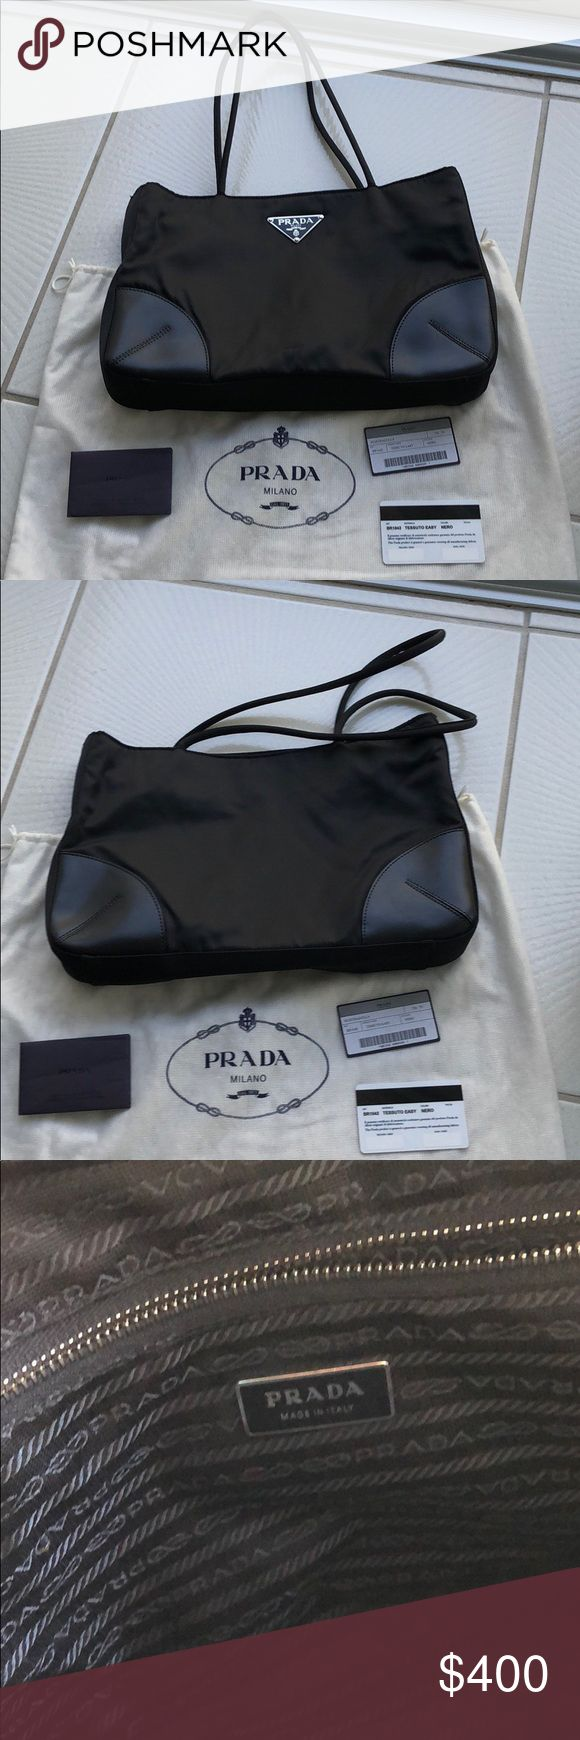 """Authentic Vintage Prada TESSUTO Tote Bag Excellent condition on this handbag. Original owner of the purse. don't believe I ever used it. Inside zipper. Nylon bag with leather corners. No marks or stains. Hardware is perfect. Pet free smoke free home. Comes with Prada dust bag, authenticity cards and all paperwork. Measurements are approx 14"""" wide, 9"""" height, depth is 2.5"""" Prada Bags Totes"""